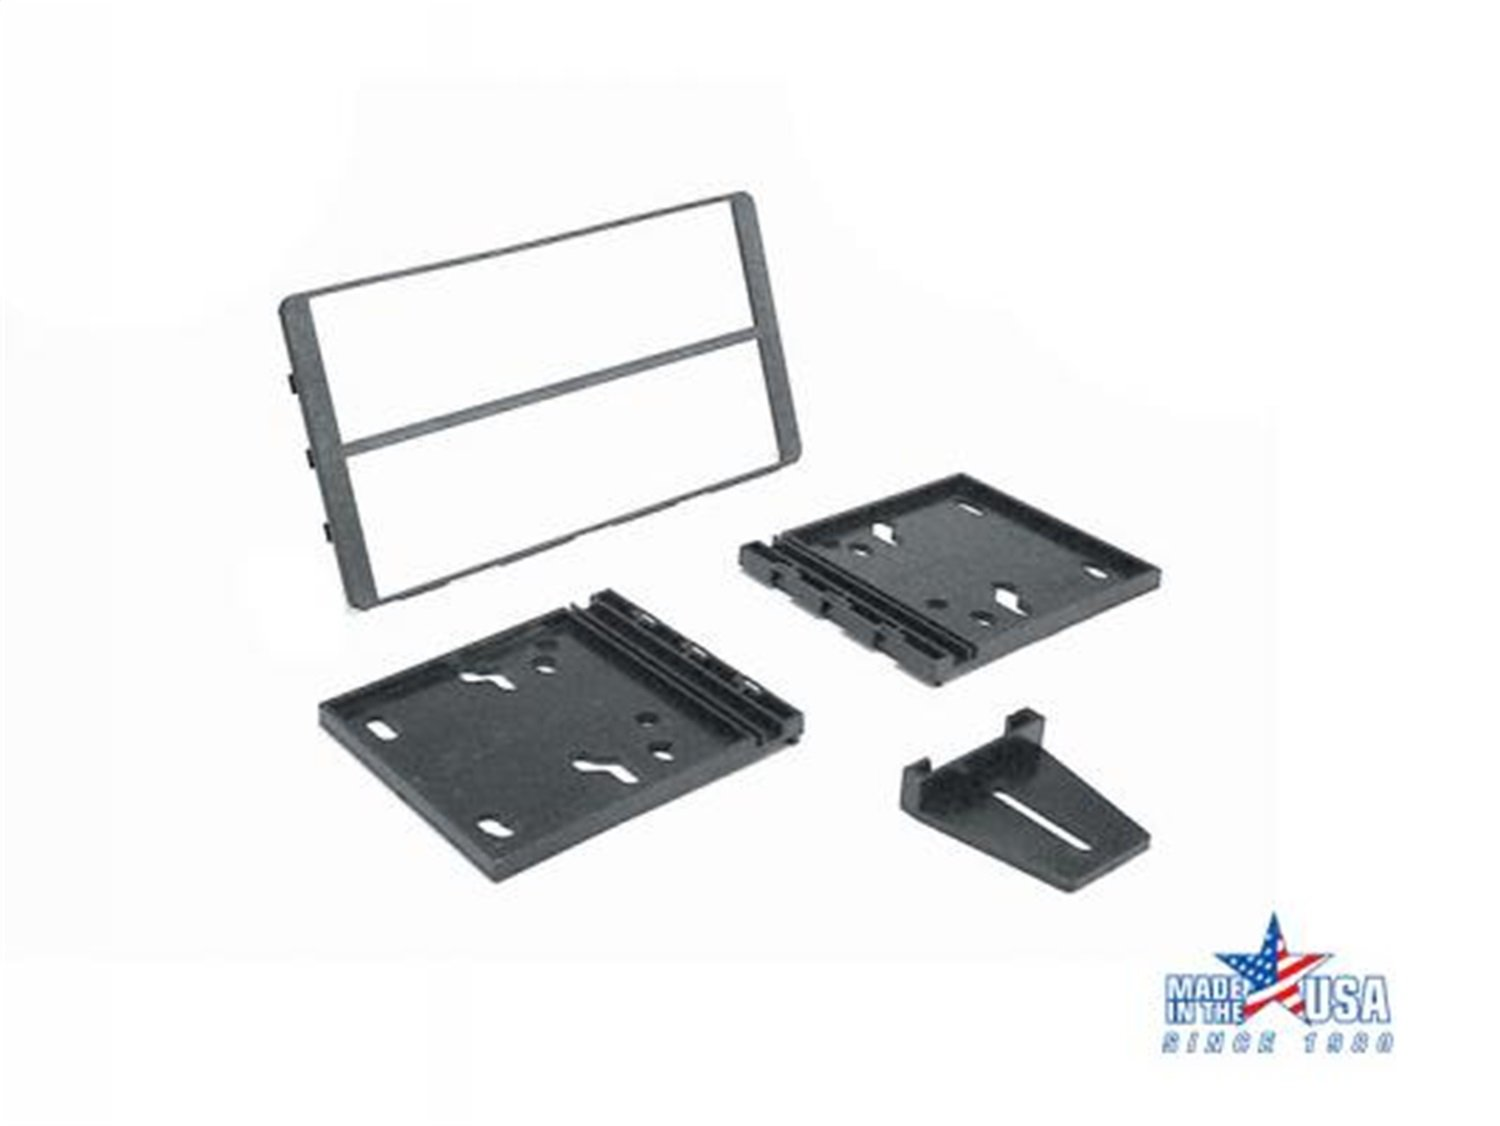 SCOSCHE FD1330B 1995-11 Mercury/Mazda Select Double DIN Dash Kit